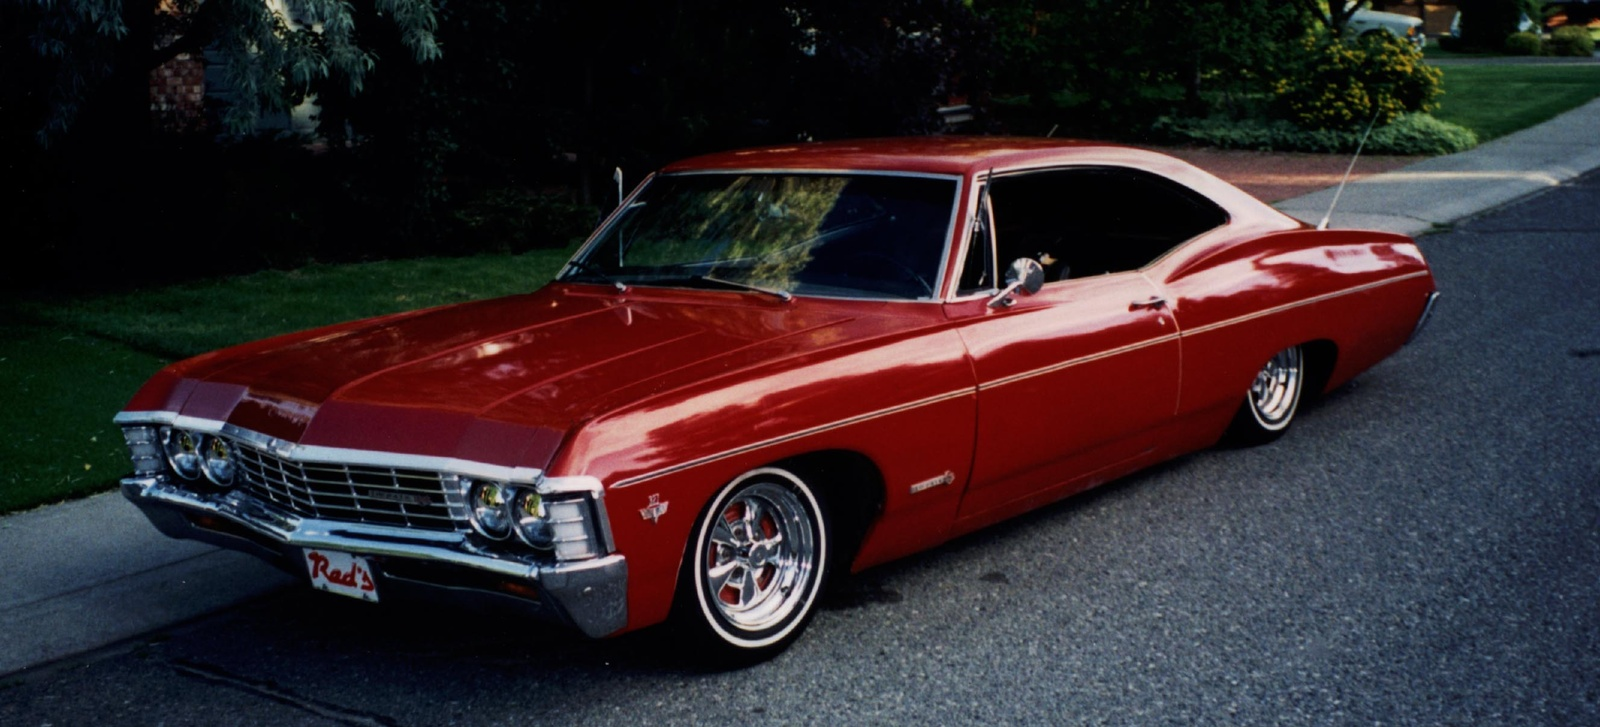 Pics For 1967 Chevy Impala Ss Wallpaper 1600x727